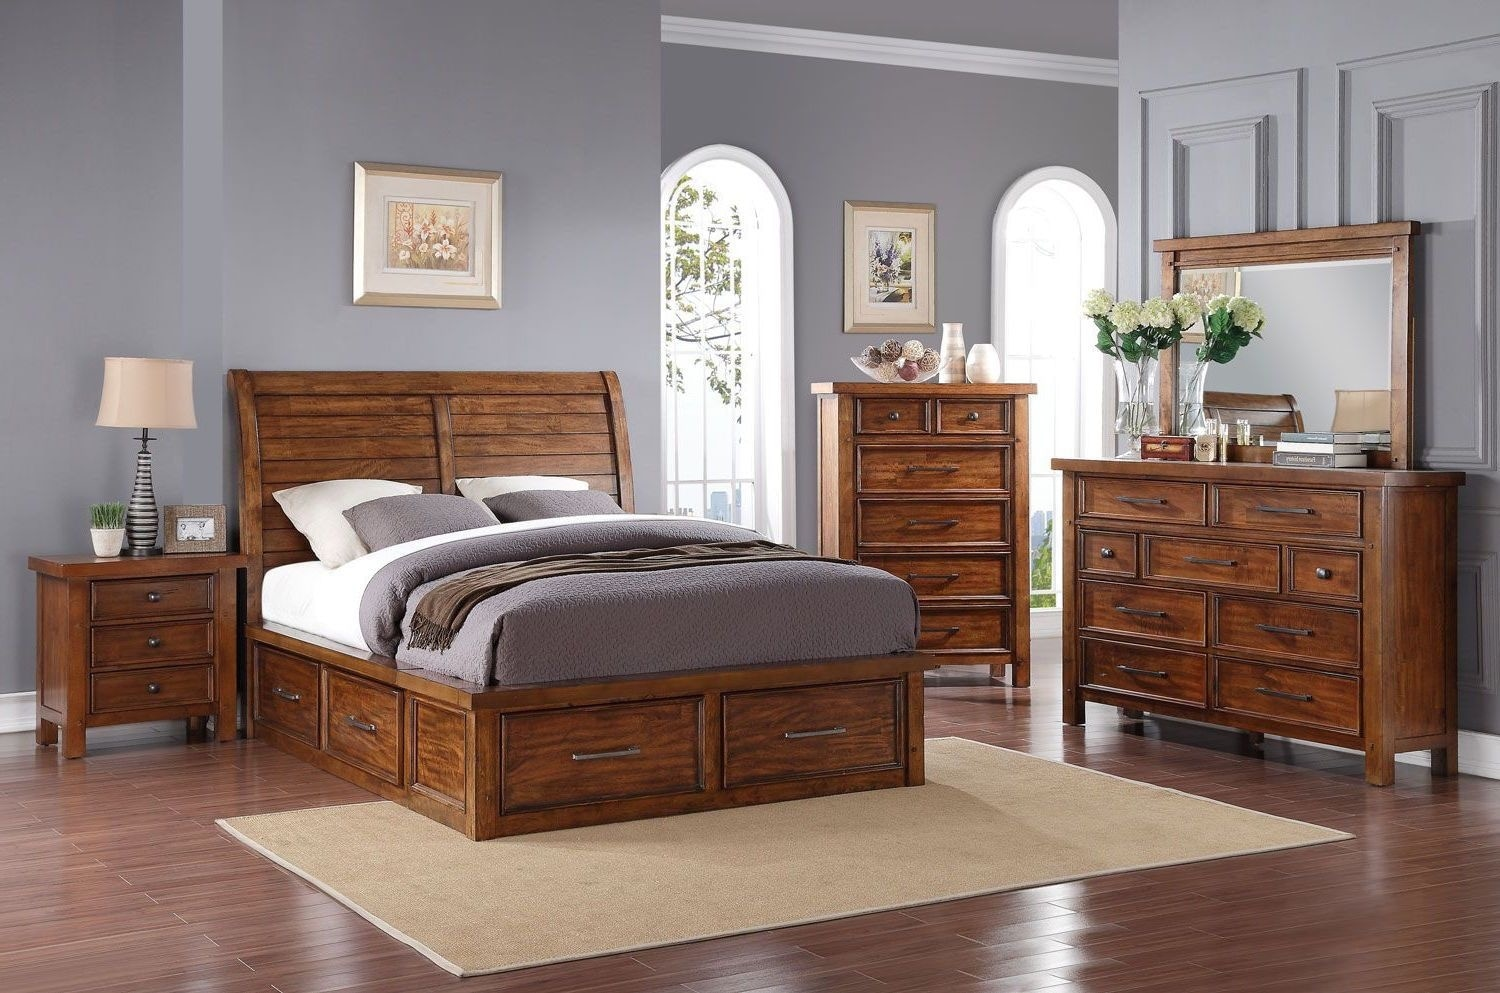 Bedroom Furniture - Sonoma 7-Piece Queen Storage Bedroom Package – Light Brown